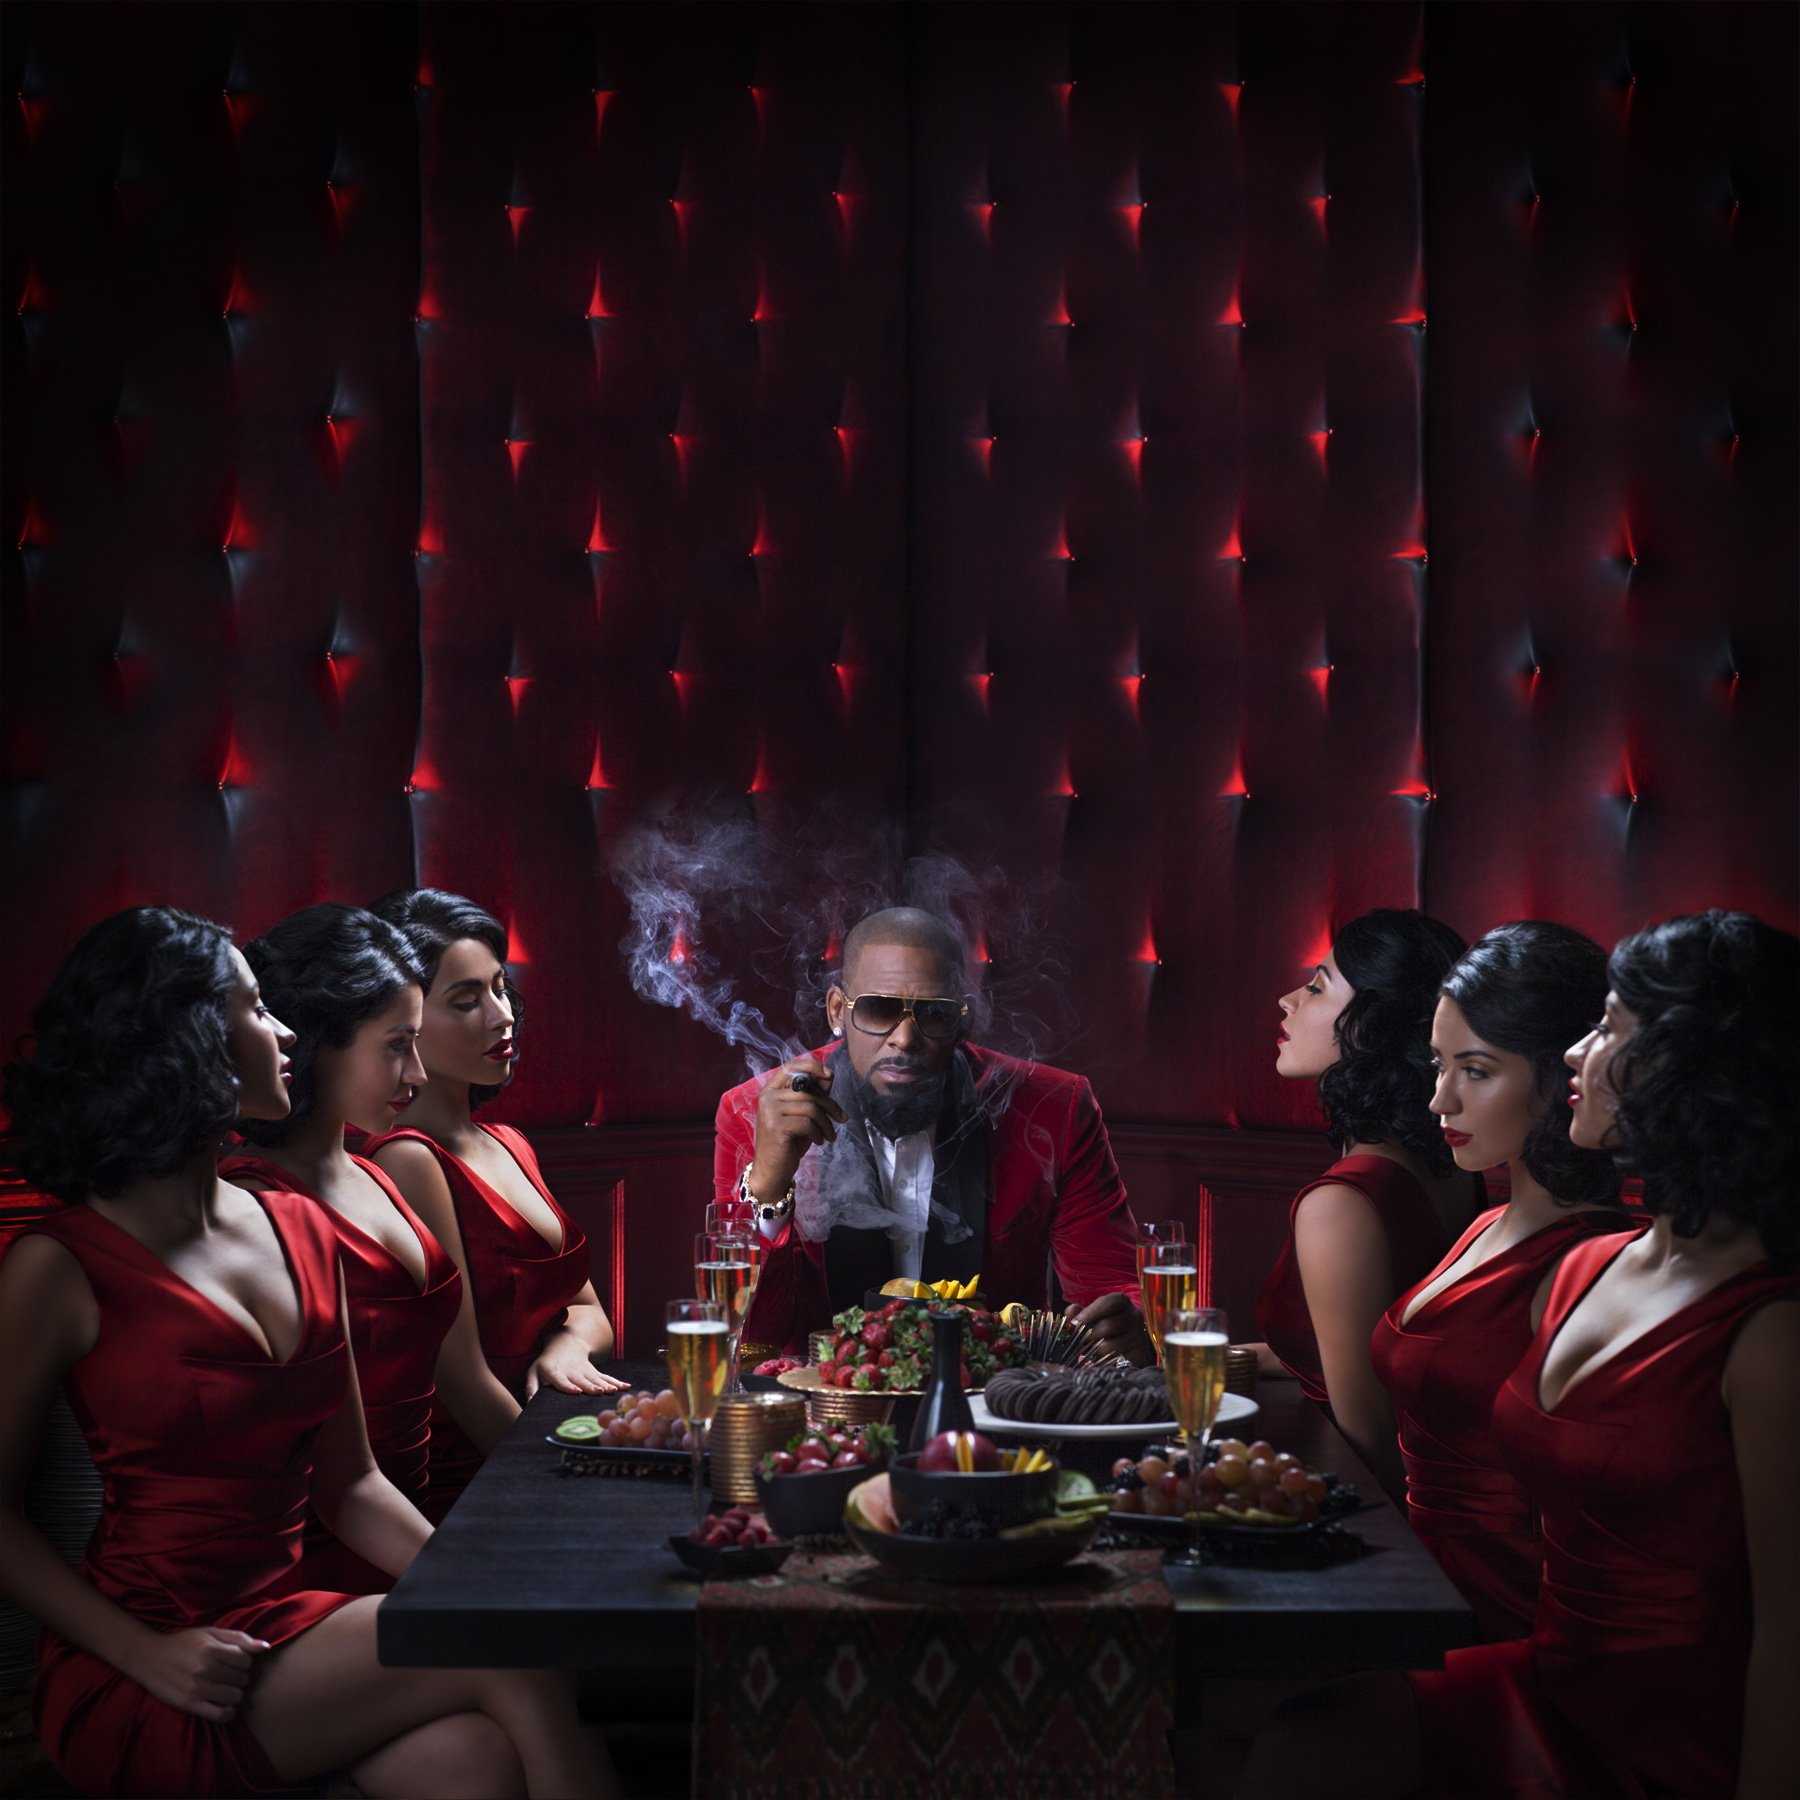 NEWS: The Star Treatment – R. Kelly Gets Away with Being a Sexual Predator